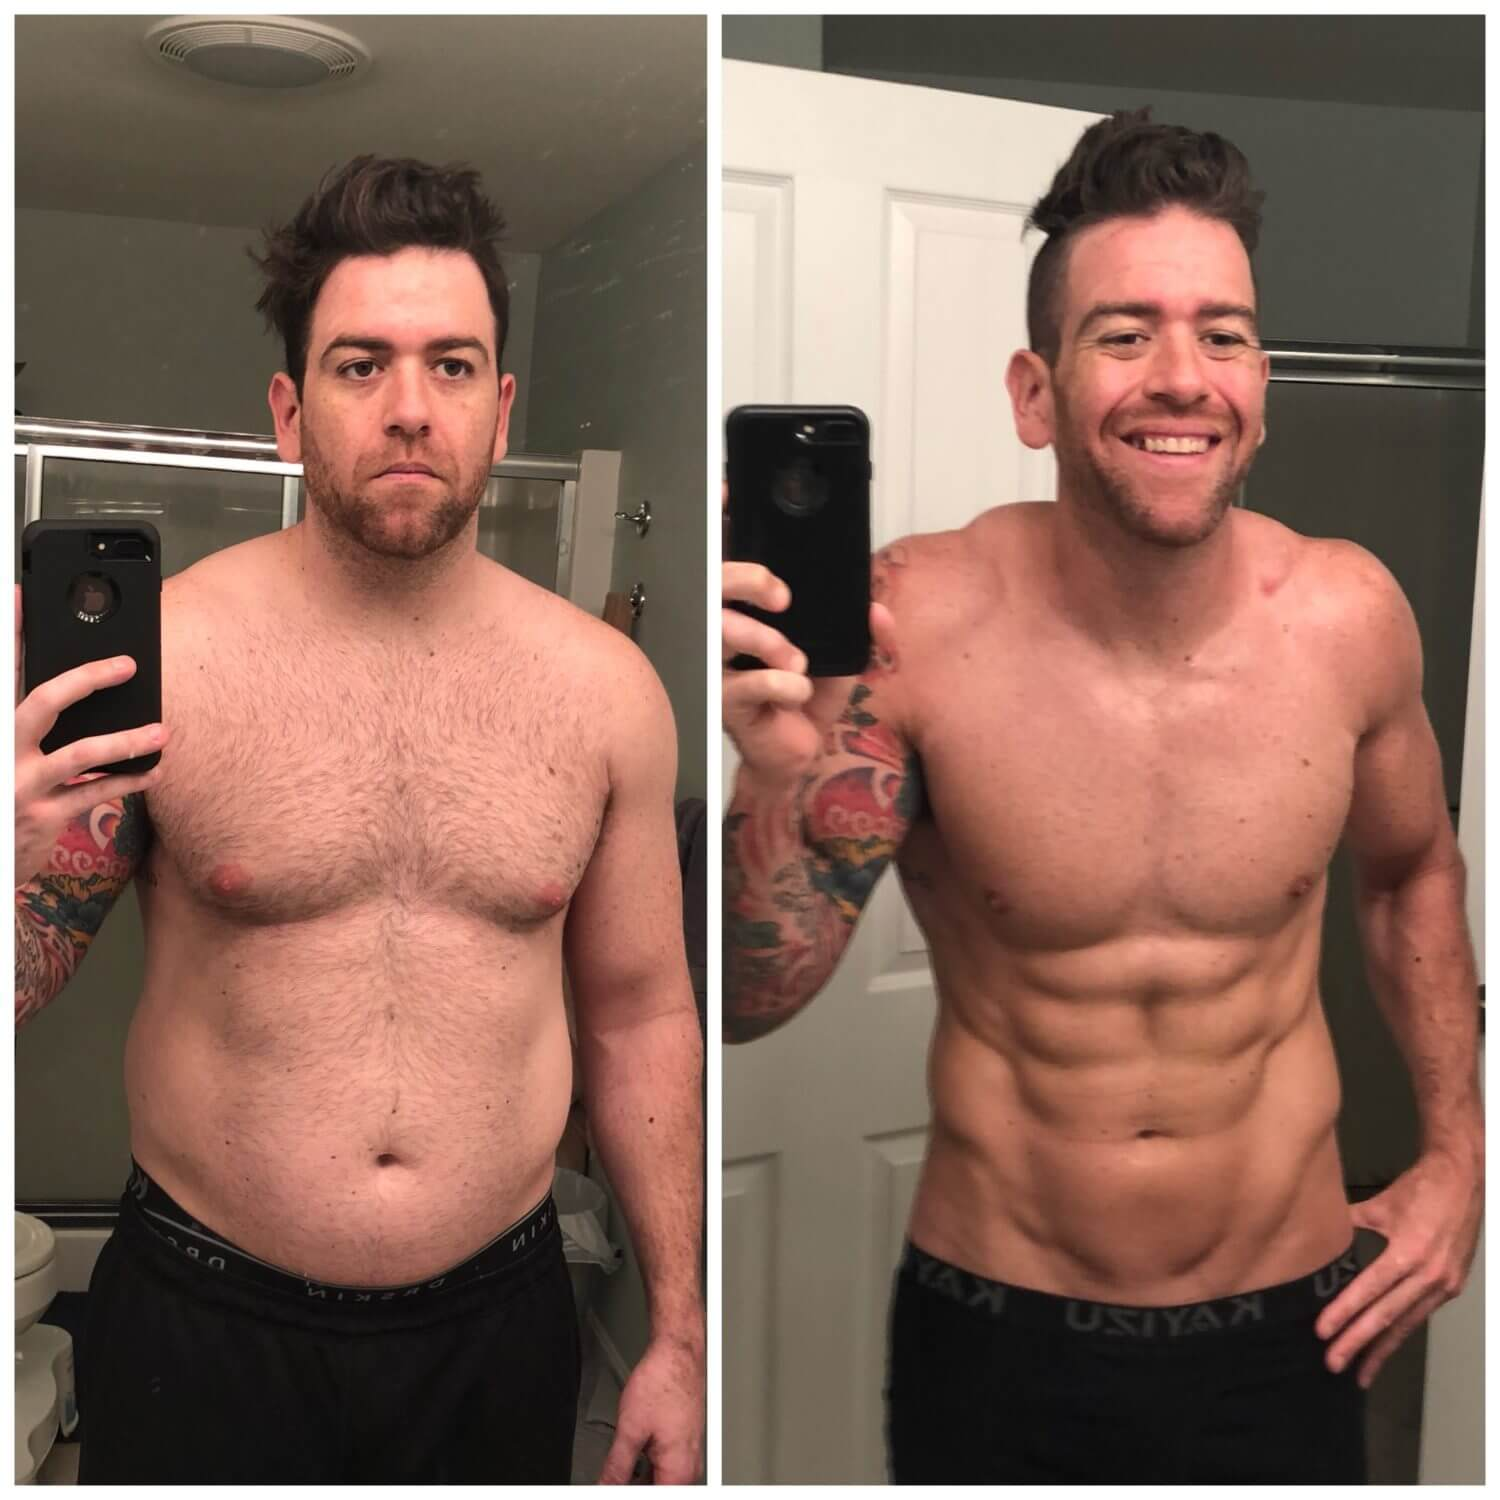 """Let's take this next step and better me for no one else. Only me."" – My Body Composition Transformation Story"